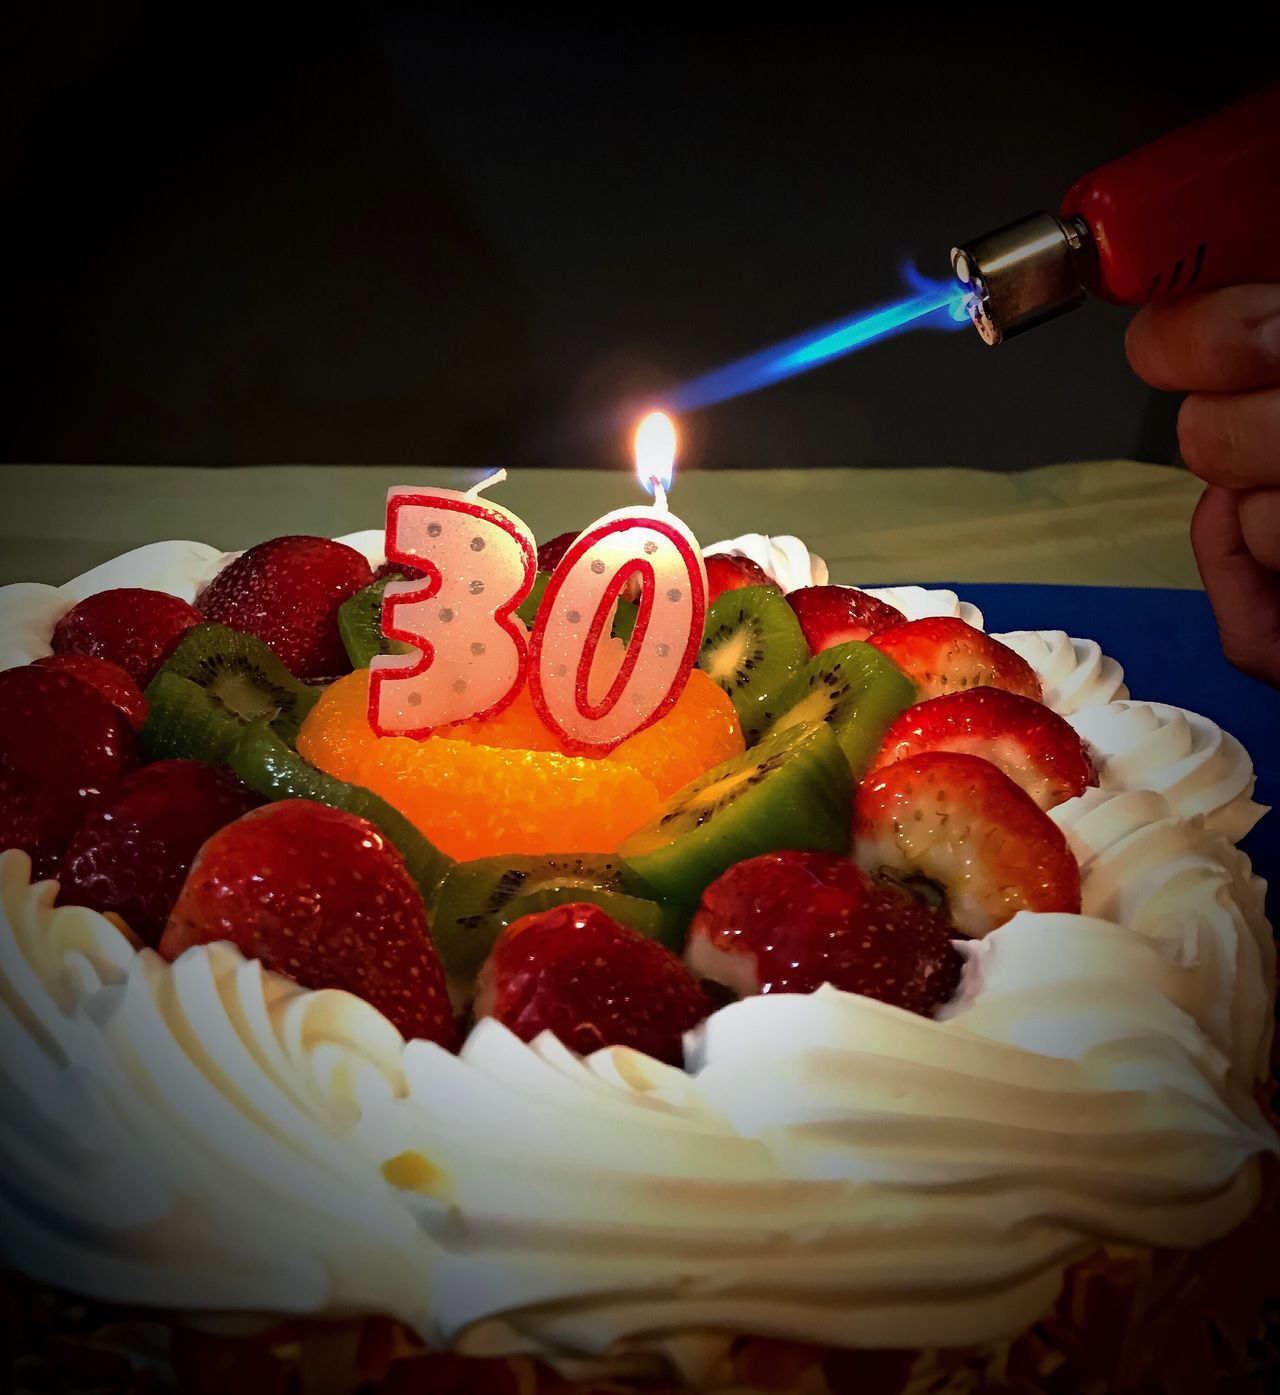 Food And Drink Indulgence Human Hand Birthday Cake Burning Birthday Flame Celebration Birthday Candles Dessert Sweet Food Candle Food Human Body Part Cake Freshness Indoors  Temptation Unhealthy Eating Blowtorch Real People Happy Birthday! 30th Anniversary 30thBirthday